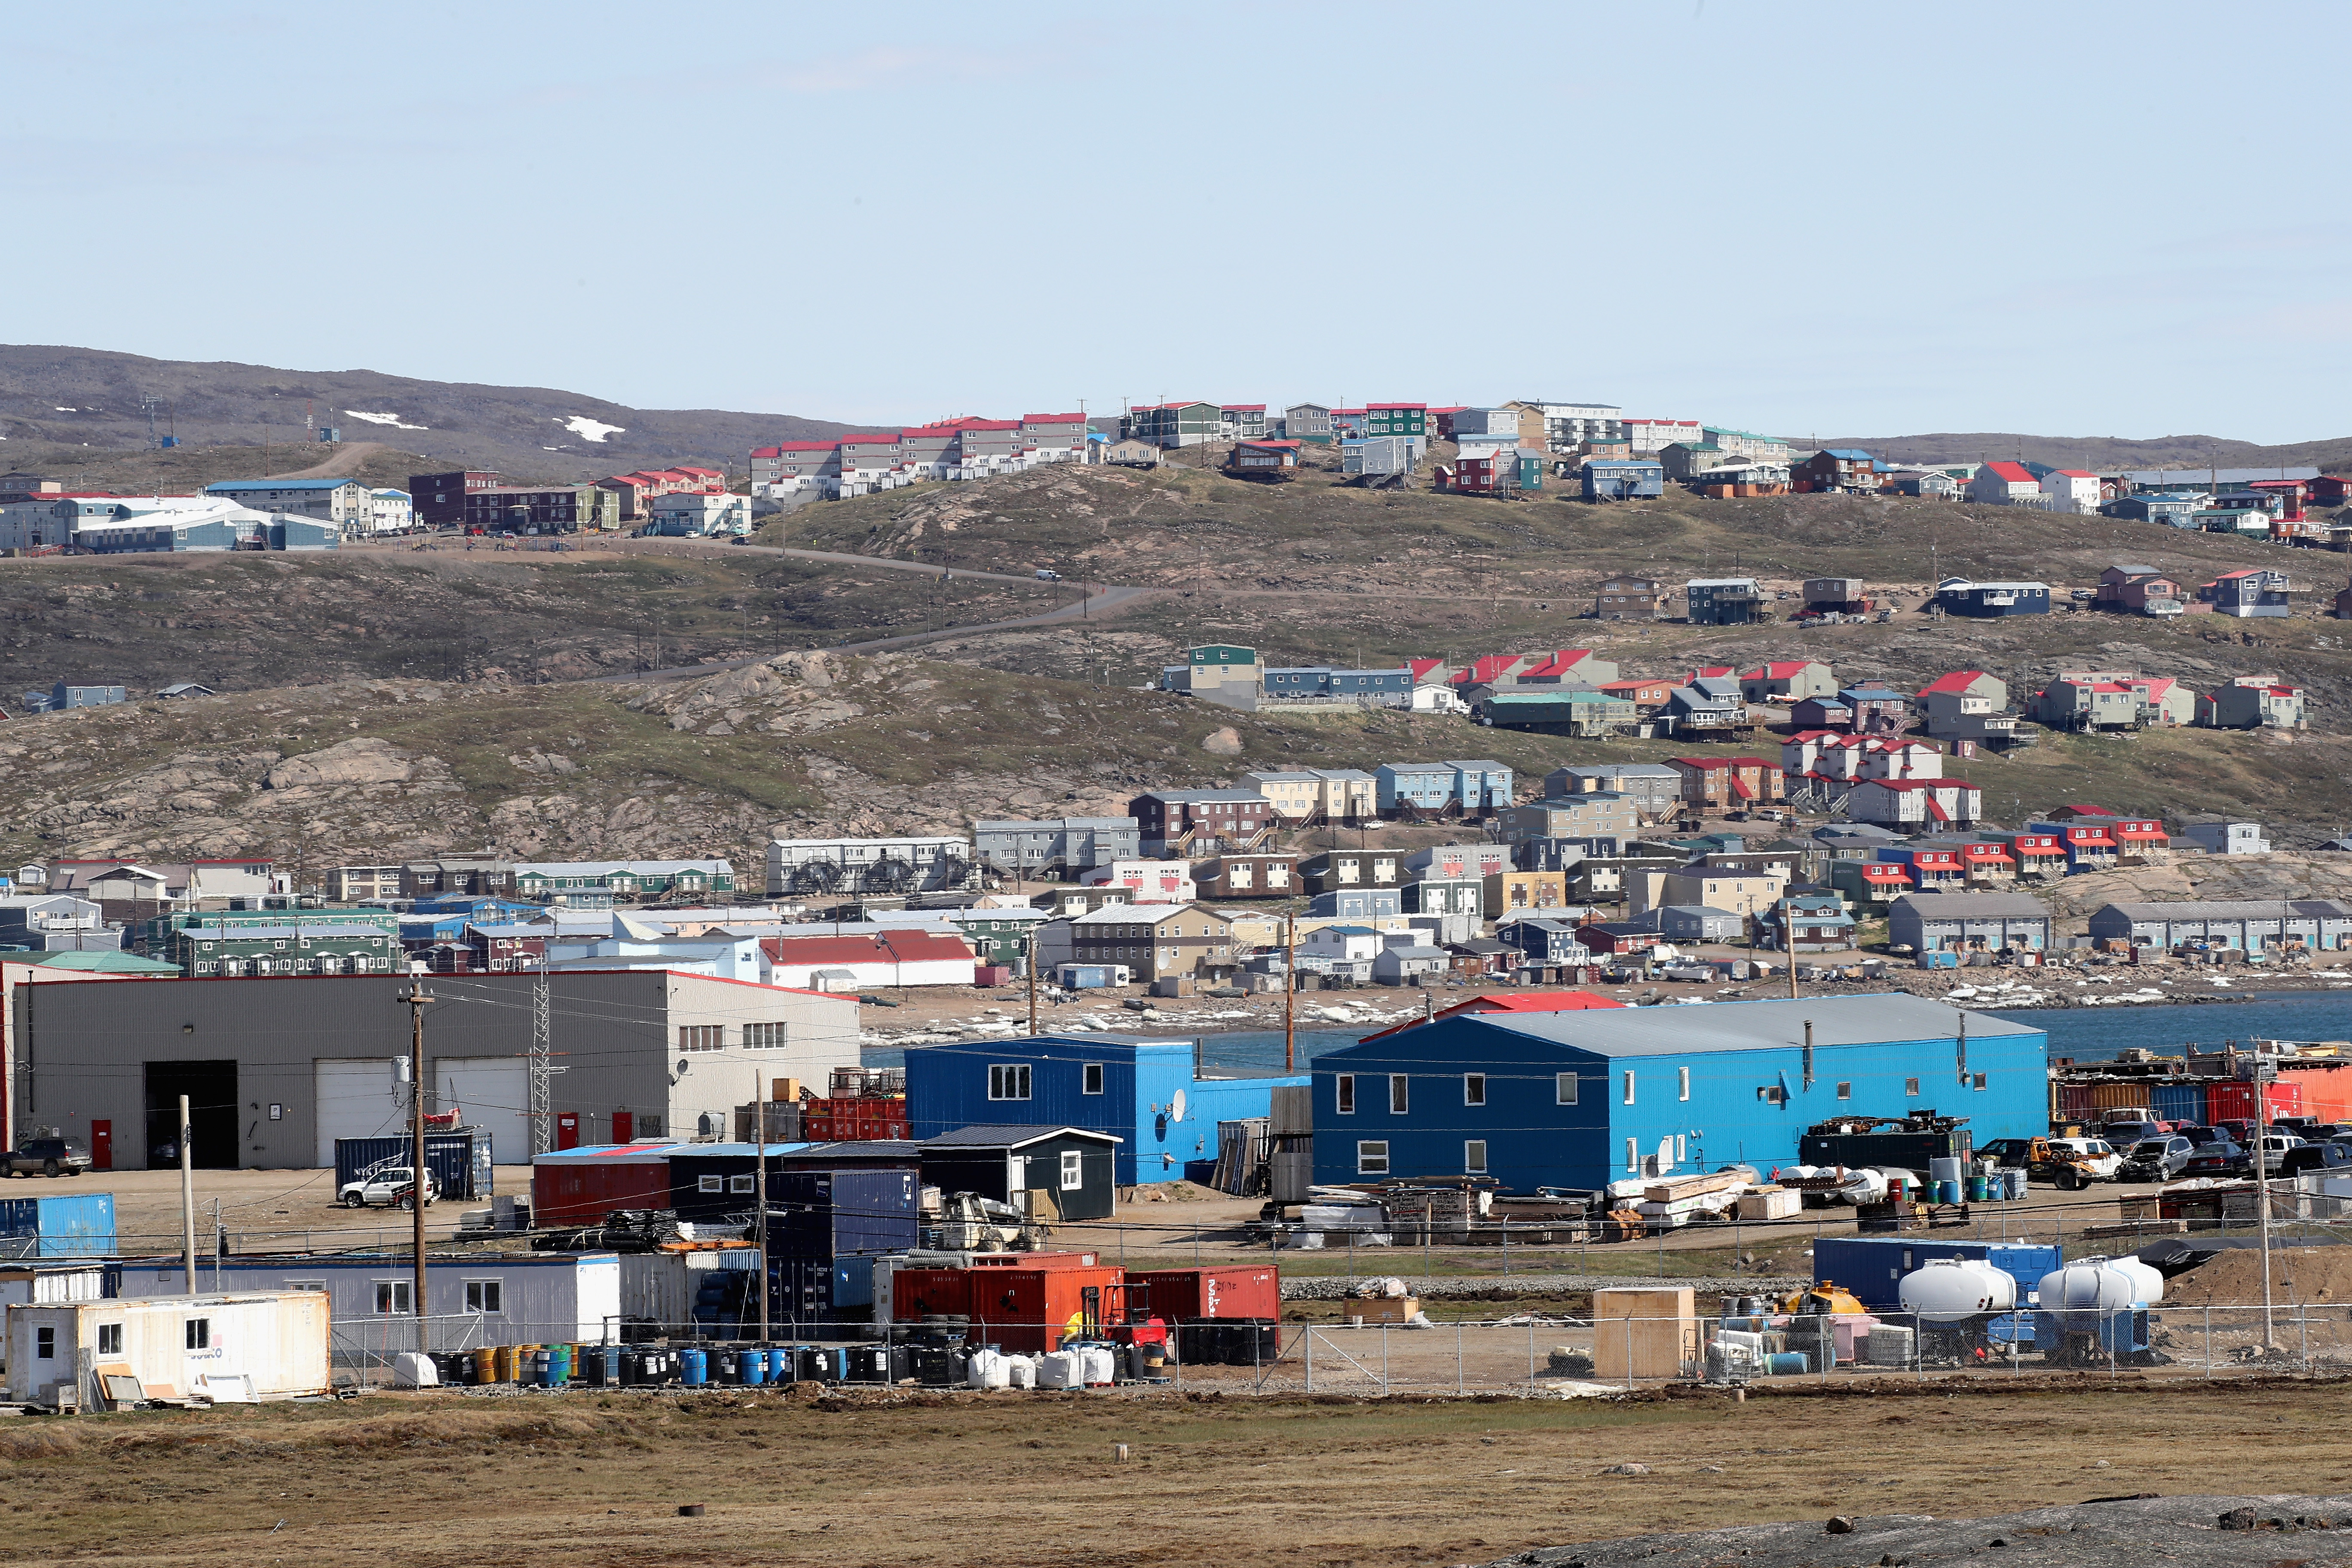 A view of Sylvia Grinnel Territorial Park in Iqaluit, Canada. (Photo by Chris Jackson/Getty Images)